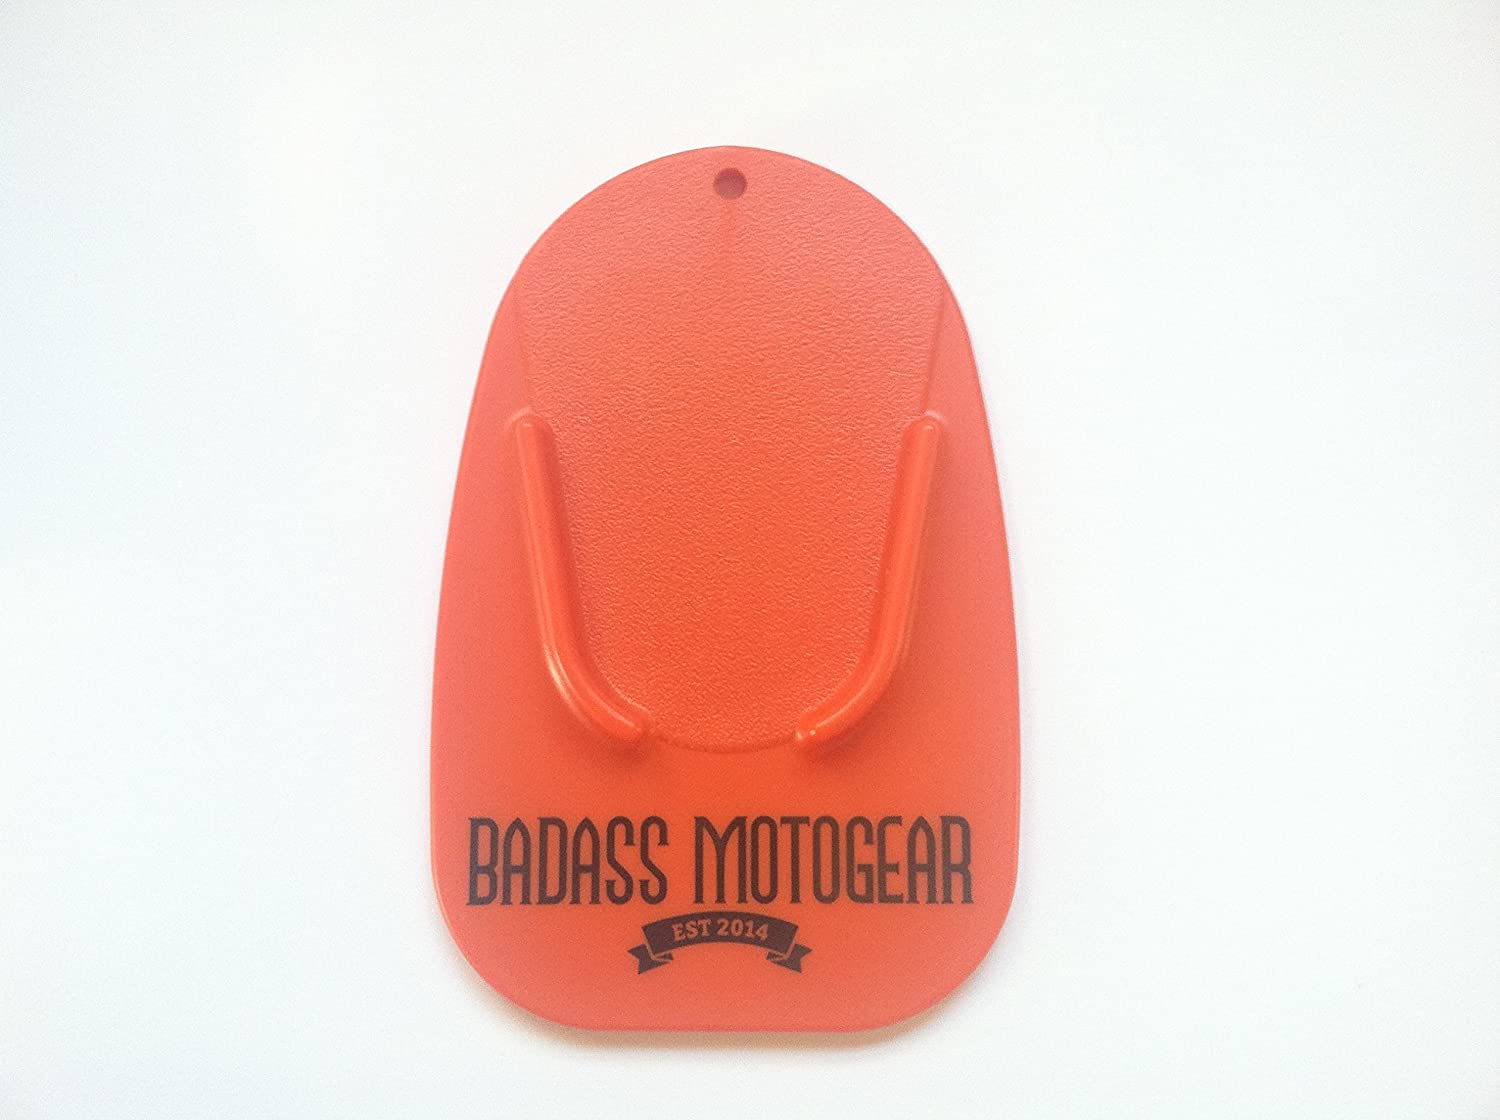 Several Colors Rest Your Kick Stand on It Like Coaster Durable Rugged Badass Moto Gear Motorcycle Kickstand Pad Made in the USA Helps You Park Your Bike on Hot Pavement Blue Grass Soft Ground